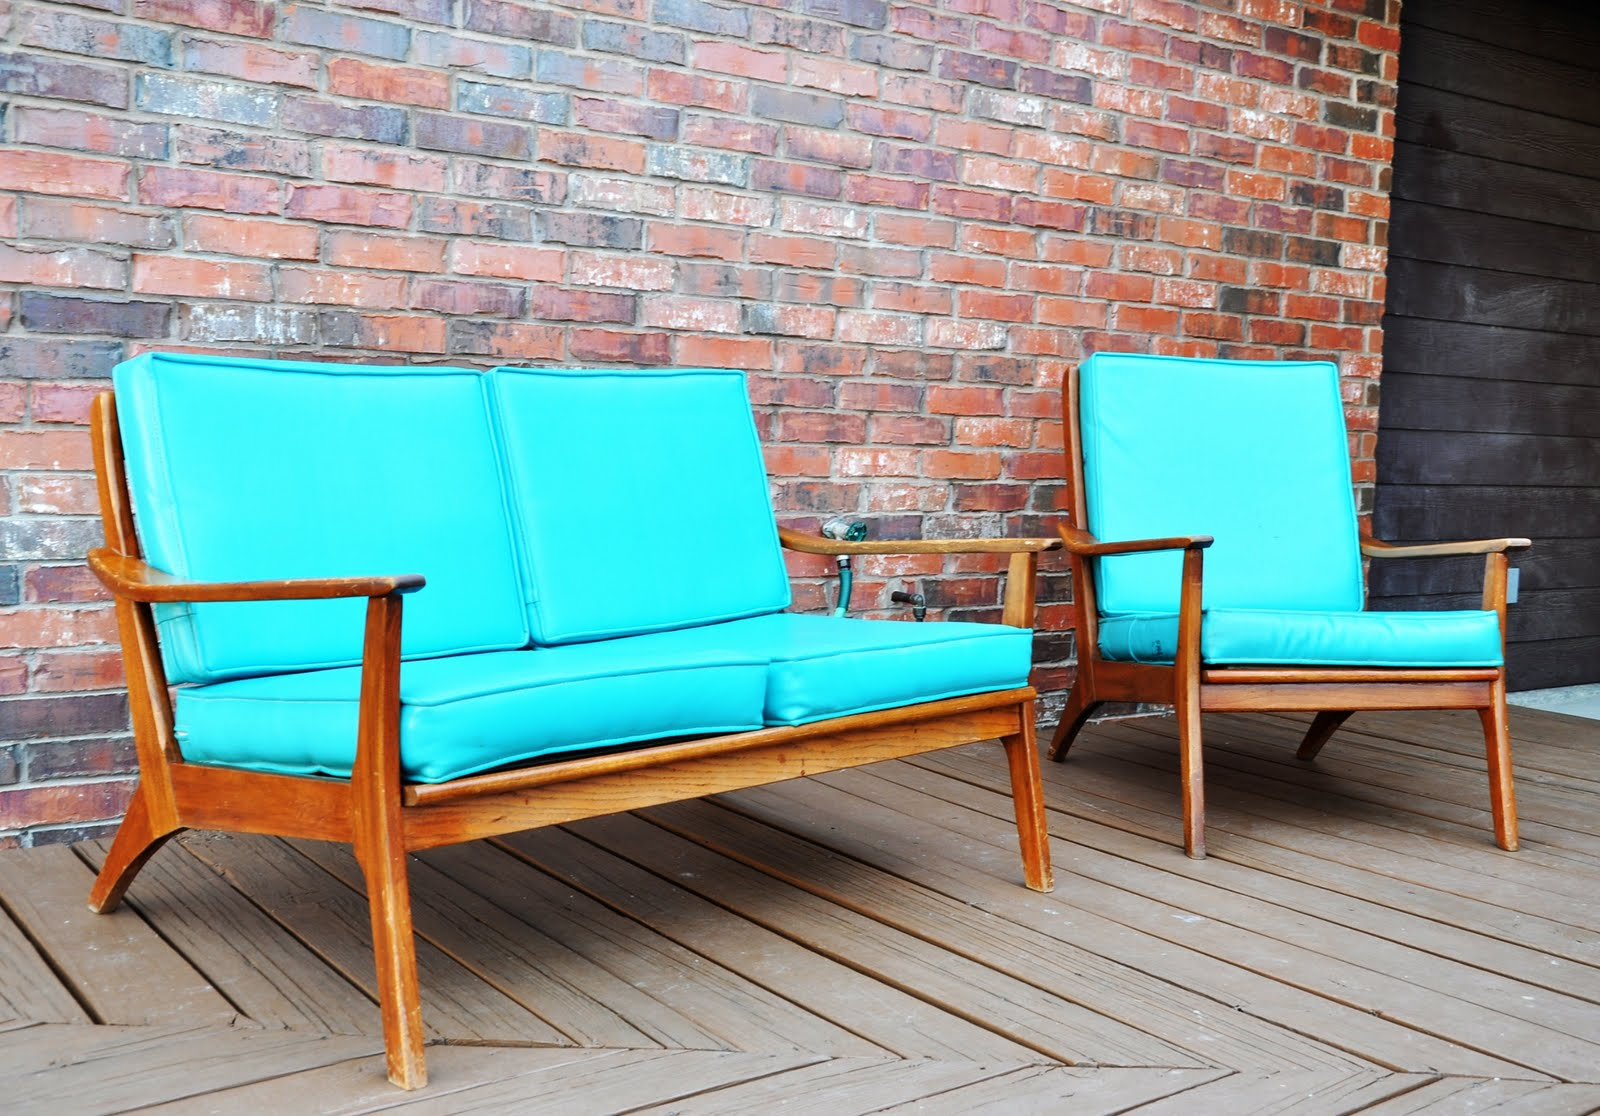 sarah 39 s loves thrifting thursdays retro patio furniture